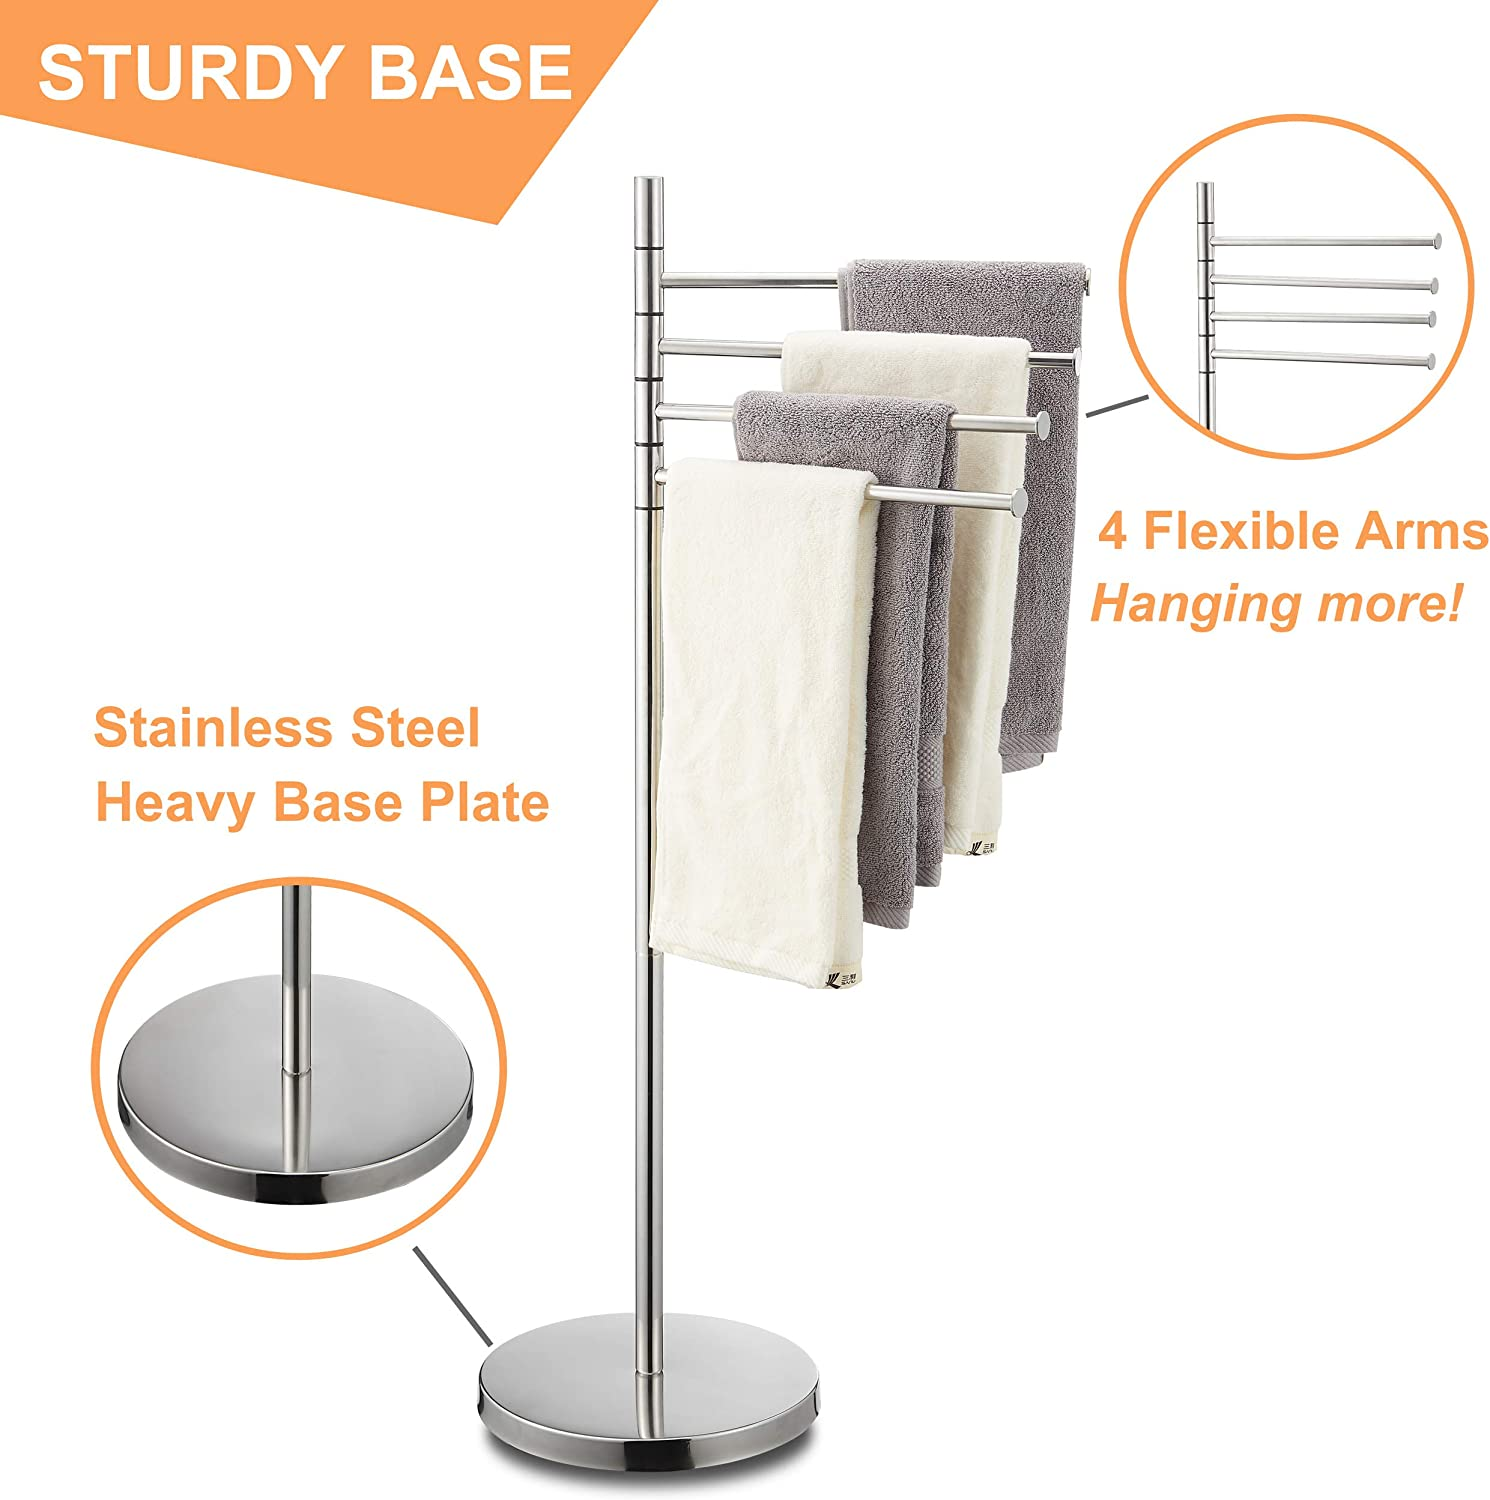 Naturous 4 Swivel Arm Towel Rack Holder Freestanding Hand Towel Bar Stand with Round Base Stainless Steel Bathroom Towel//Kitchen Towel Rack Stand